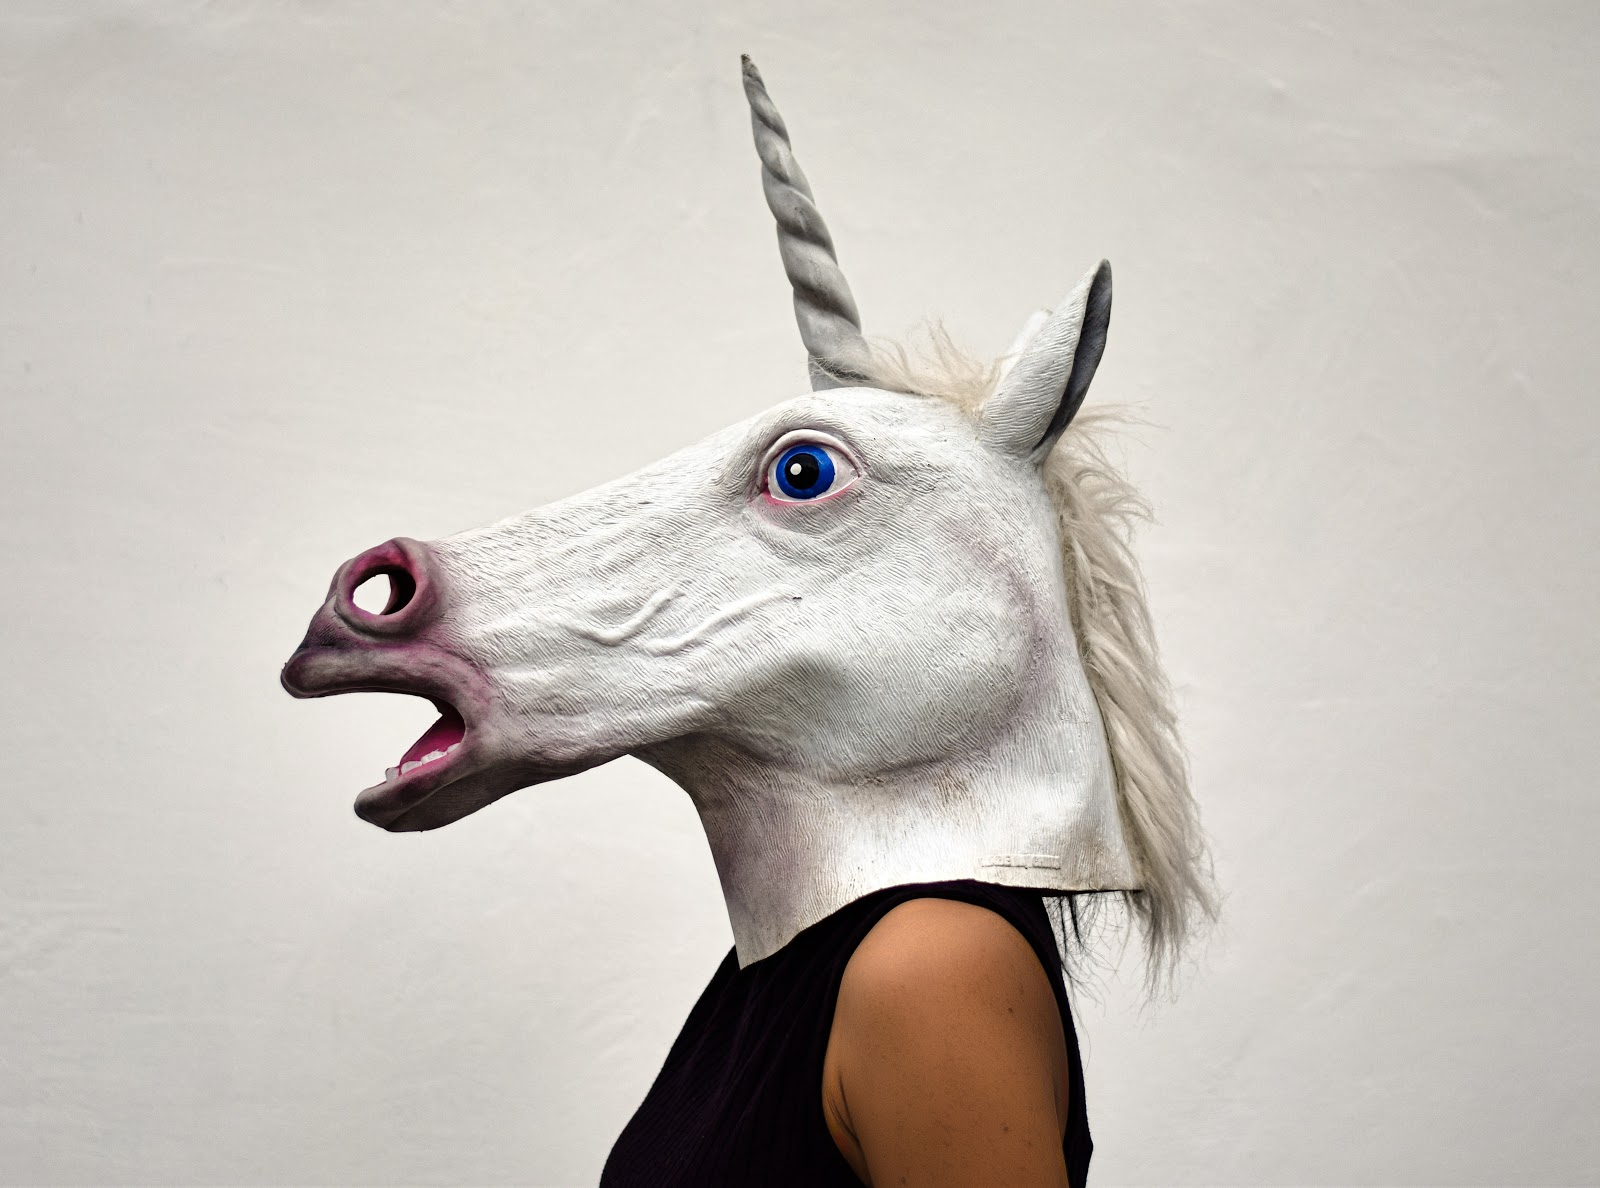 But maybe don't be a creepy unicorn like this.